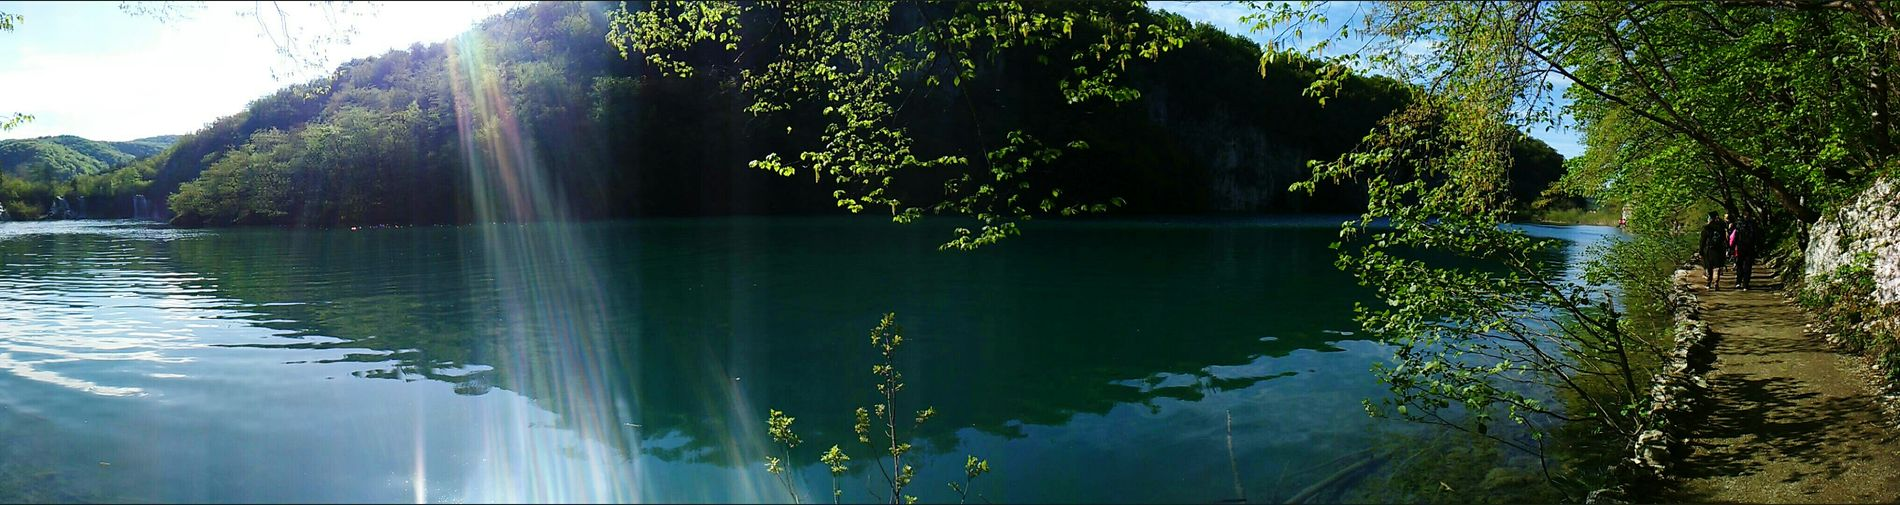 Happy Earth day to everyone! Plitvice Lakes National Park Sunnyday Schooltrip Perfect Panorama Shot. Nature Photography Naturelover Reflections In The Water No Filters Or Effects Green Color Earth Day 2016 EyeEm Best Shots - Nature